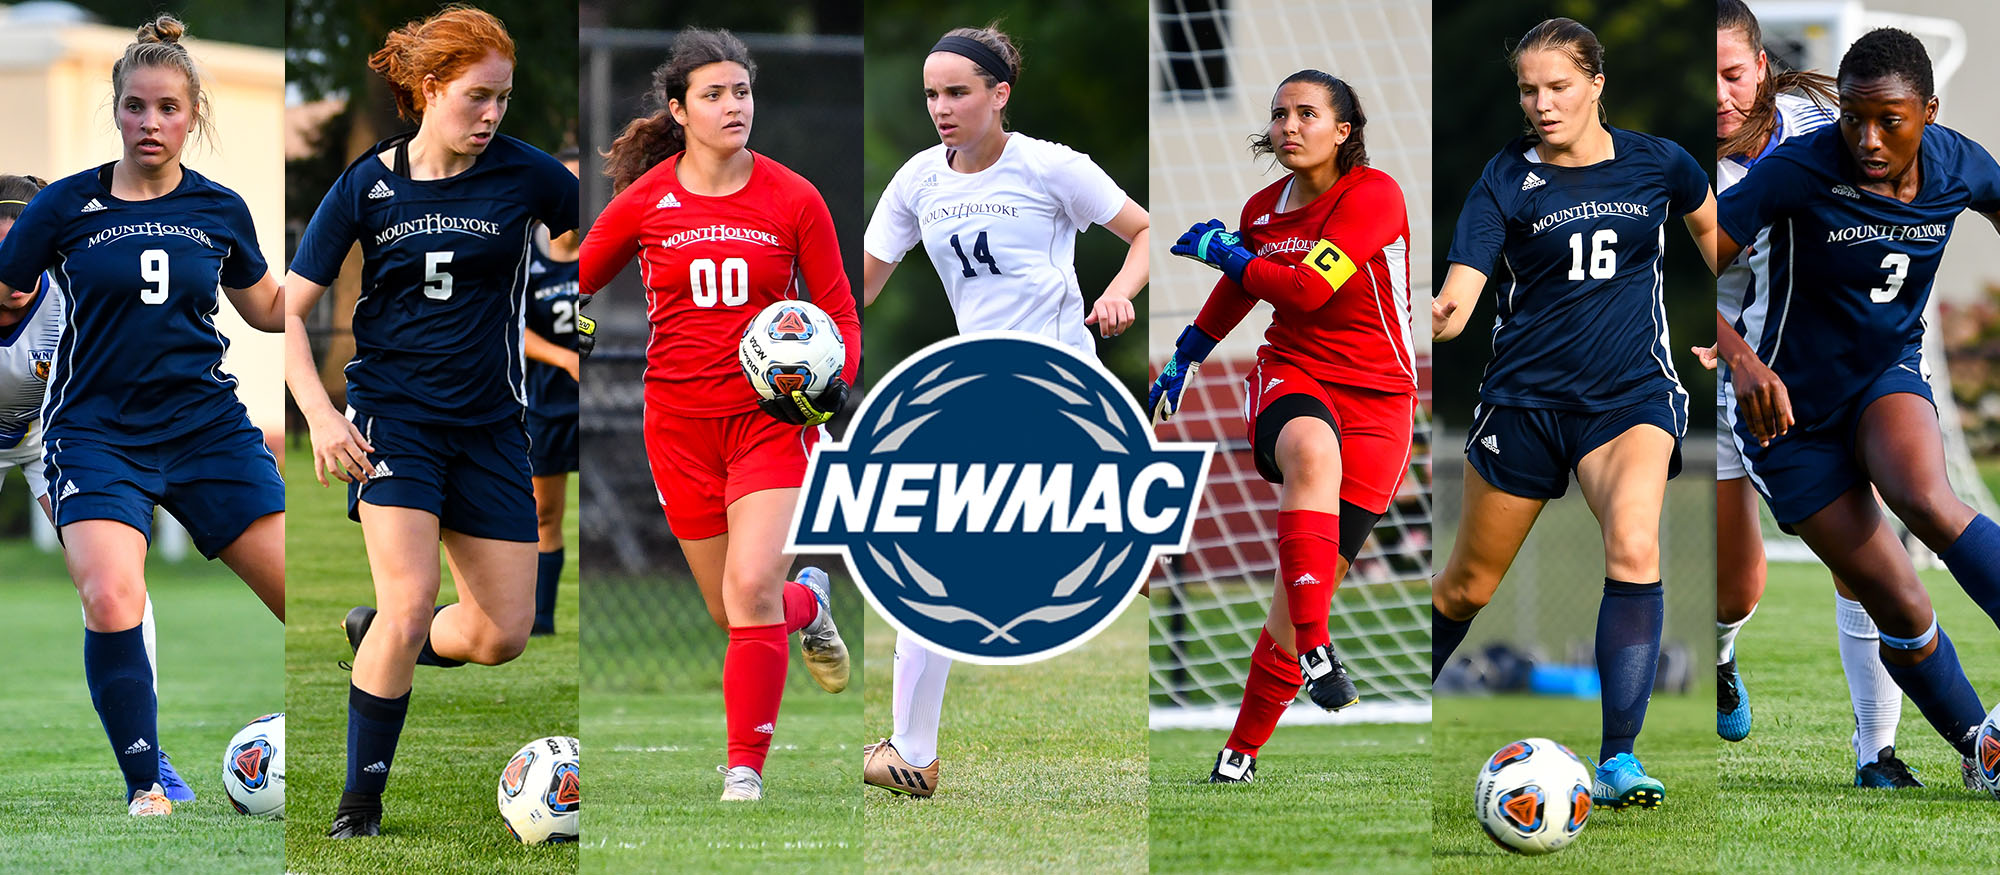 Eight Soccer Student-Athletes Garner NEWMAC Academic All-Conference Recognition